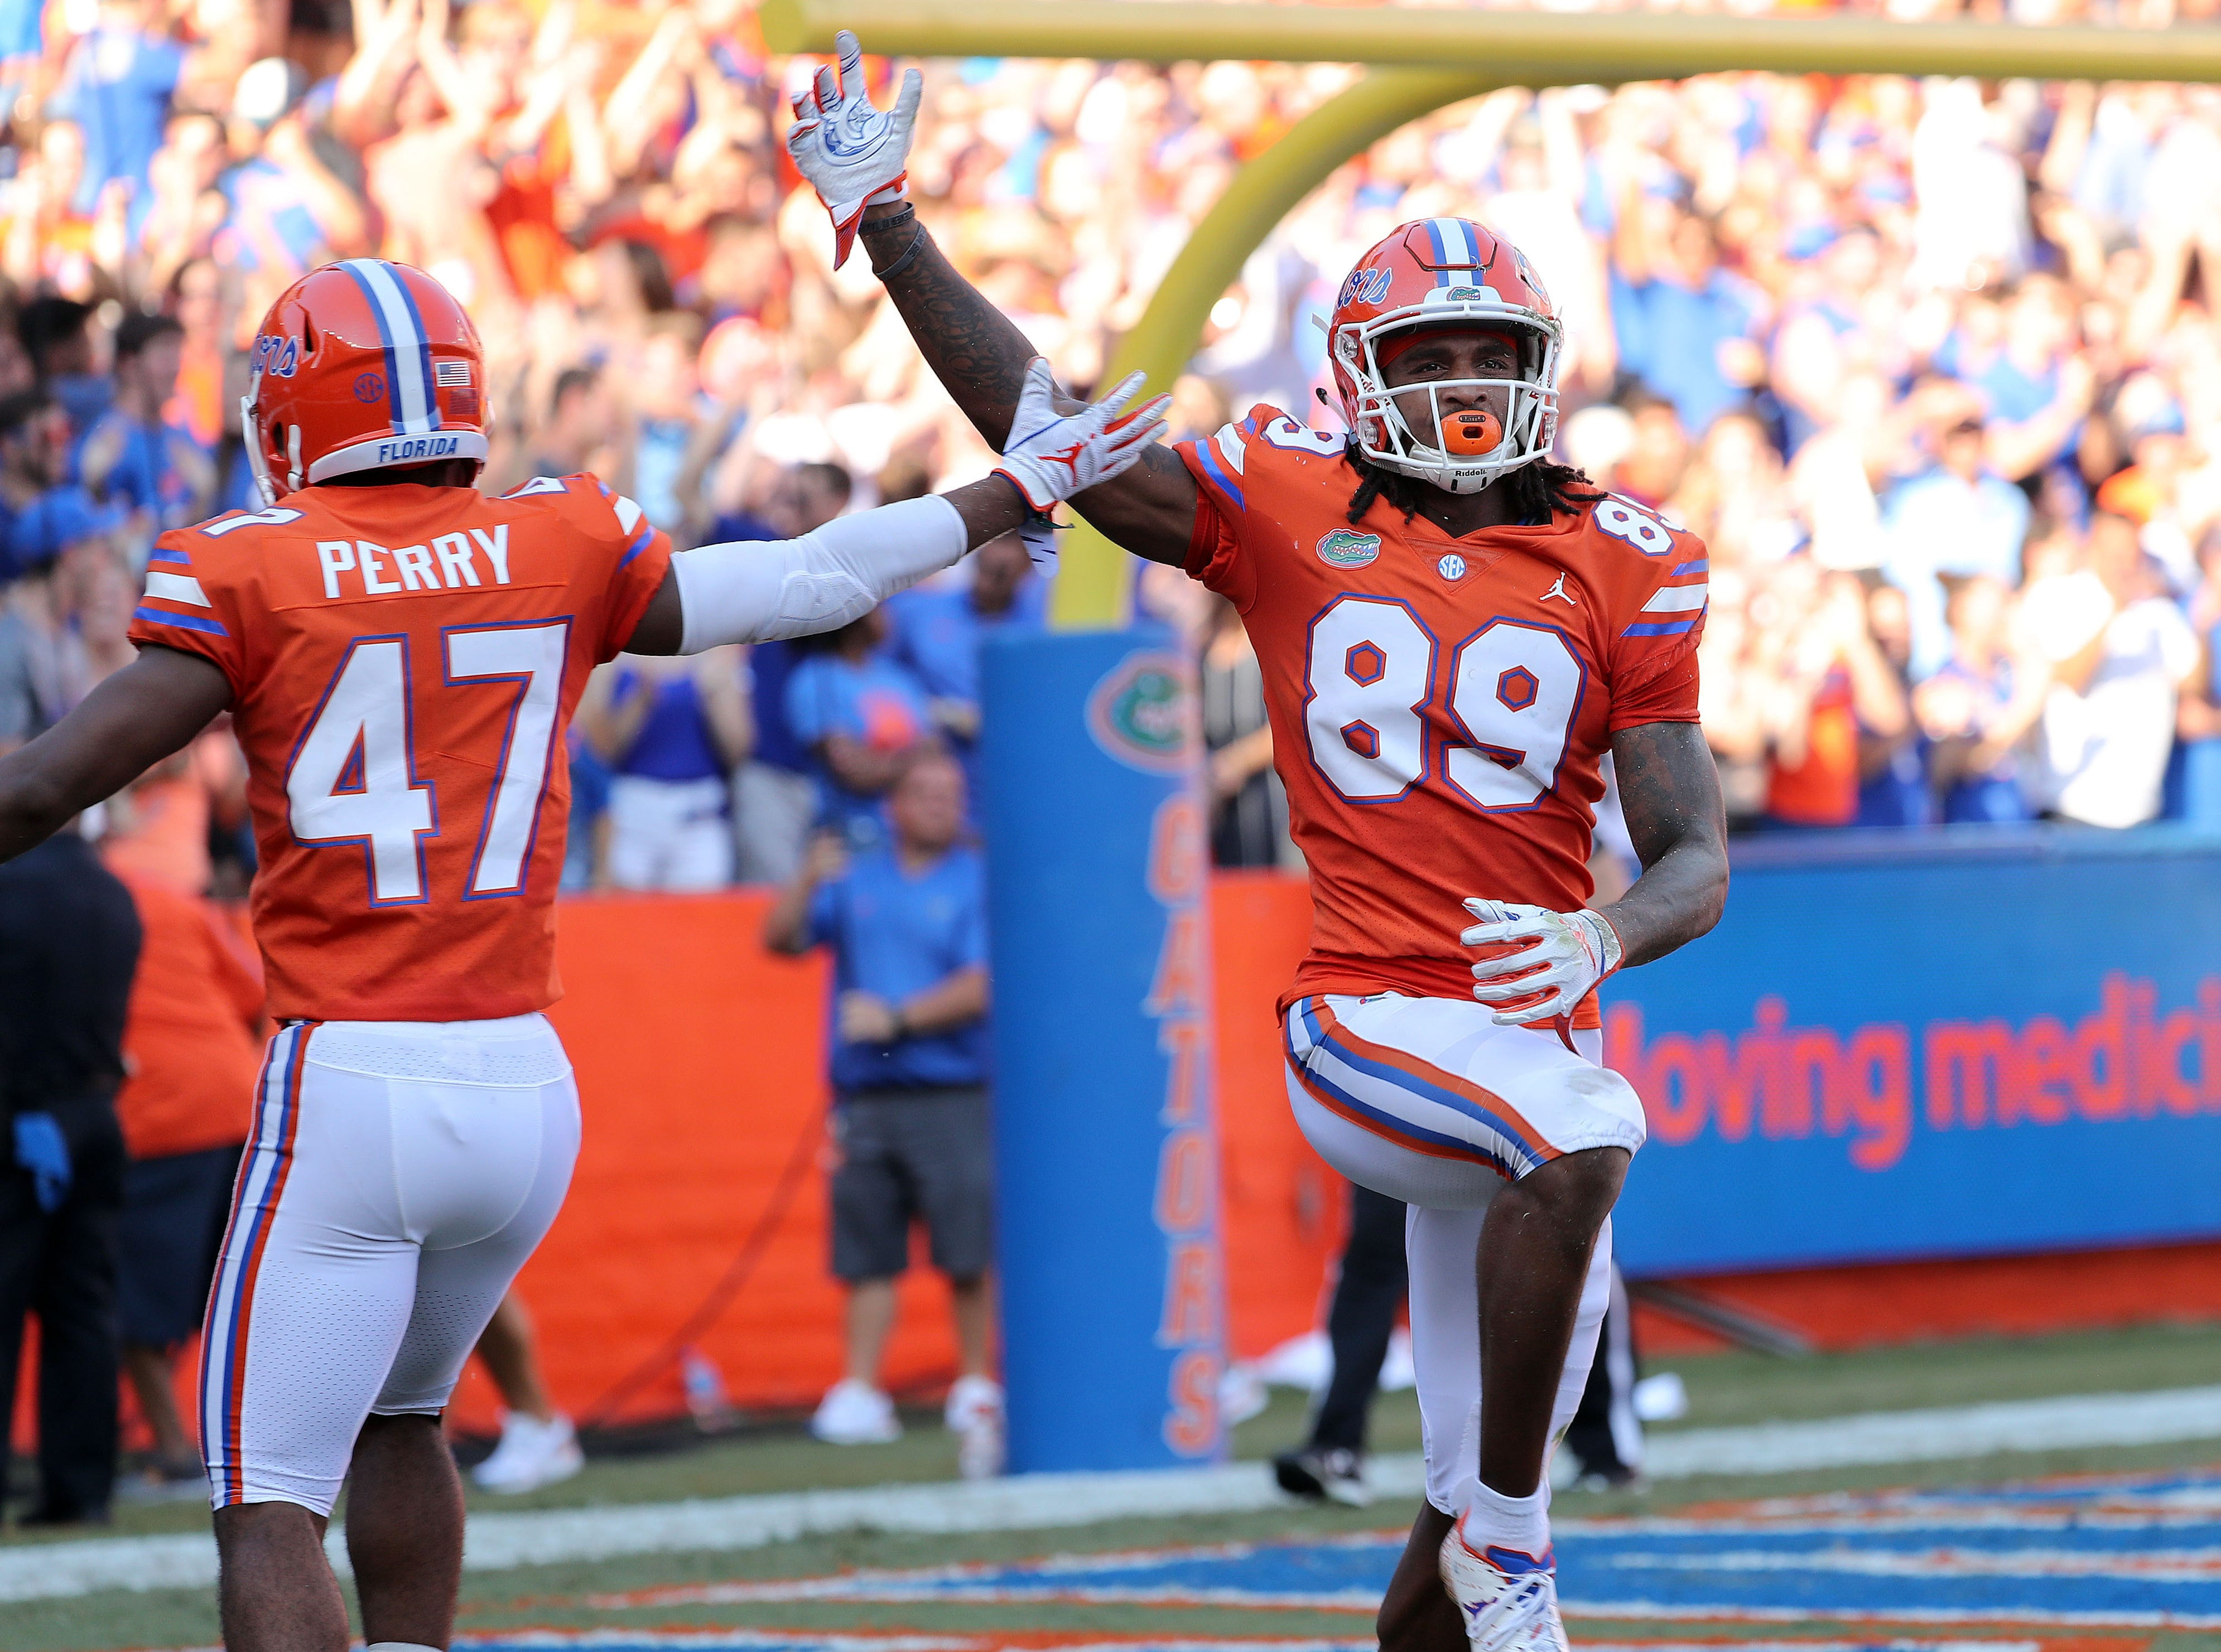 Sep 15, 2018; Gainesville, FL, USA; Florida Gators wide receiver Tyrie Cleveland (89) celebrates as he recovered the block punt for a touchdown against the Colorado State Rams during the second quarter at Ben Hill Griffin Stadium. Mandatory Credit: Kim Klement-USA TODAY Sports